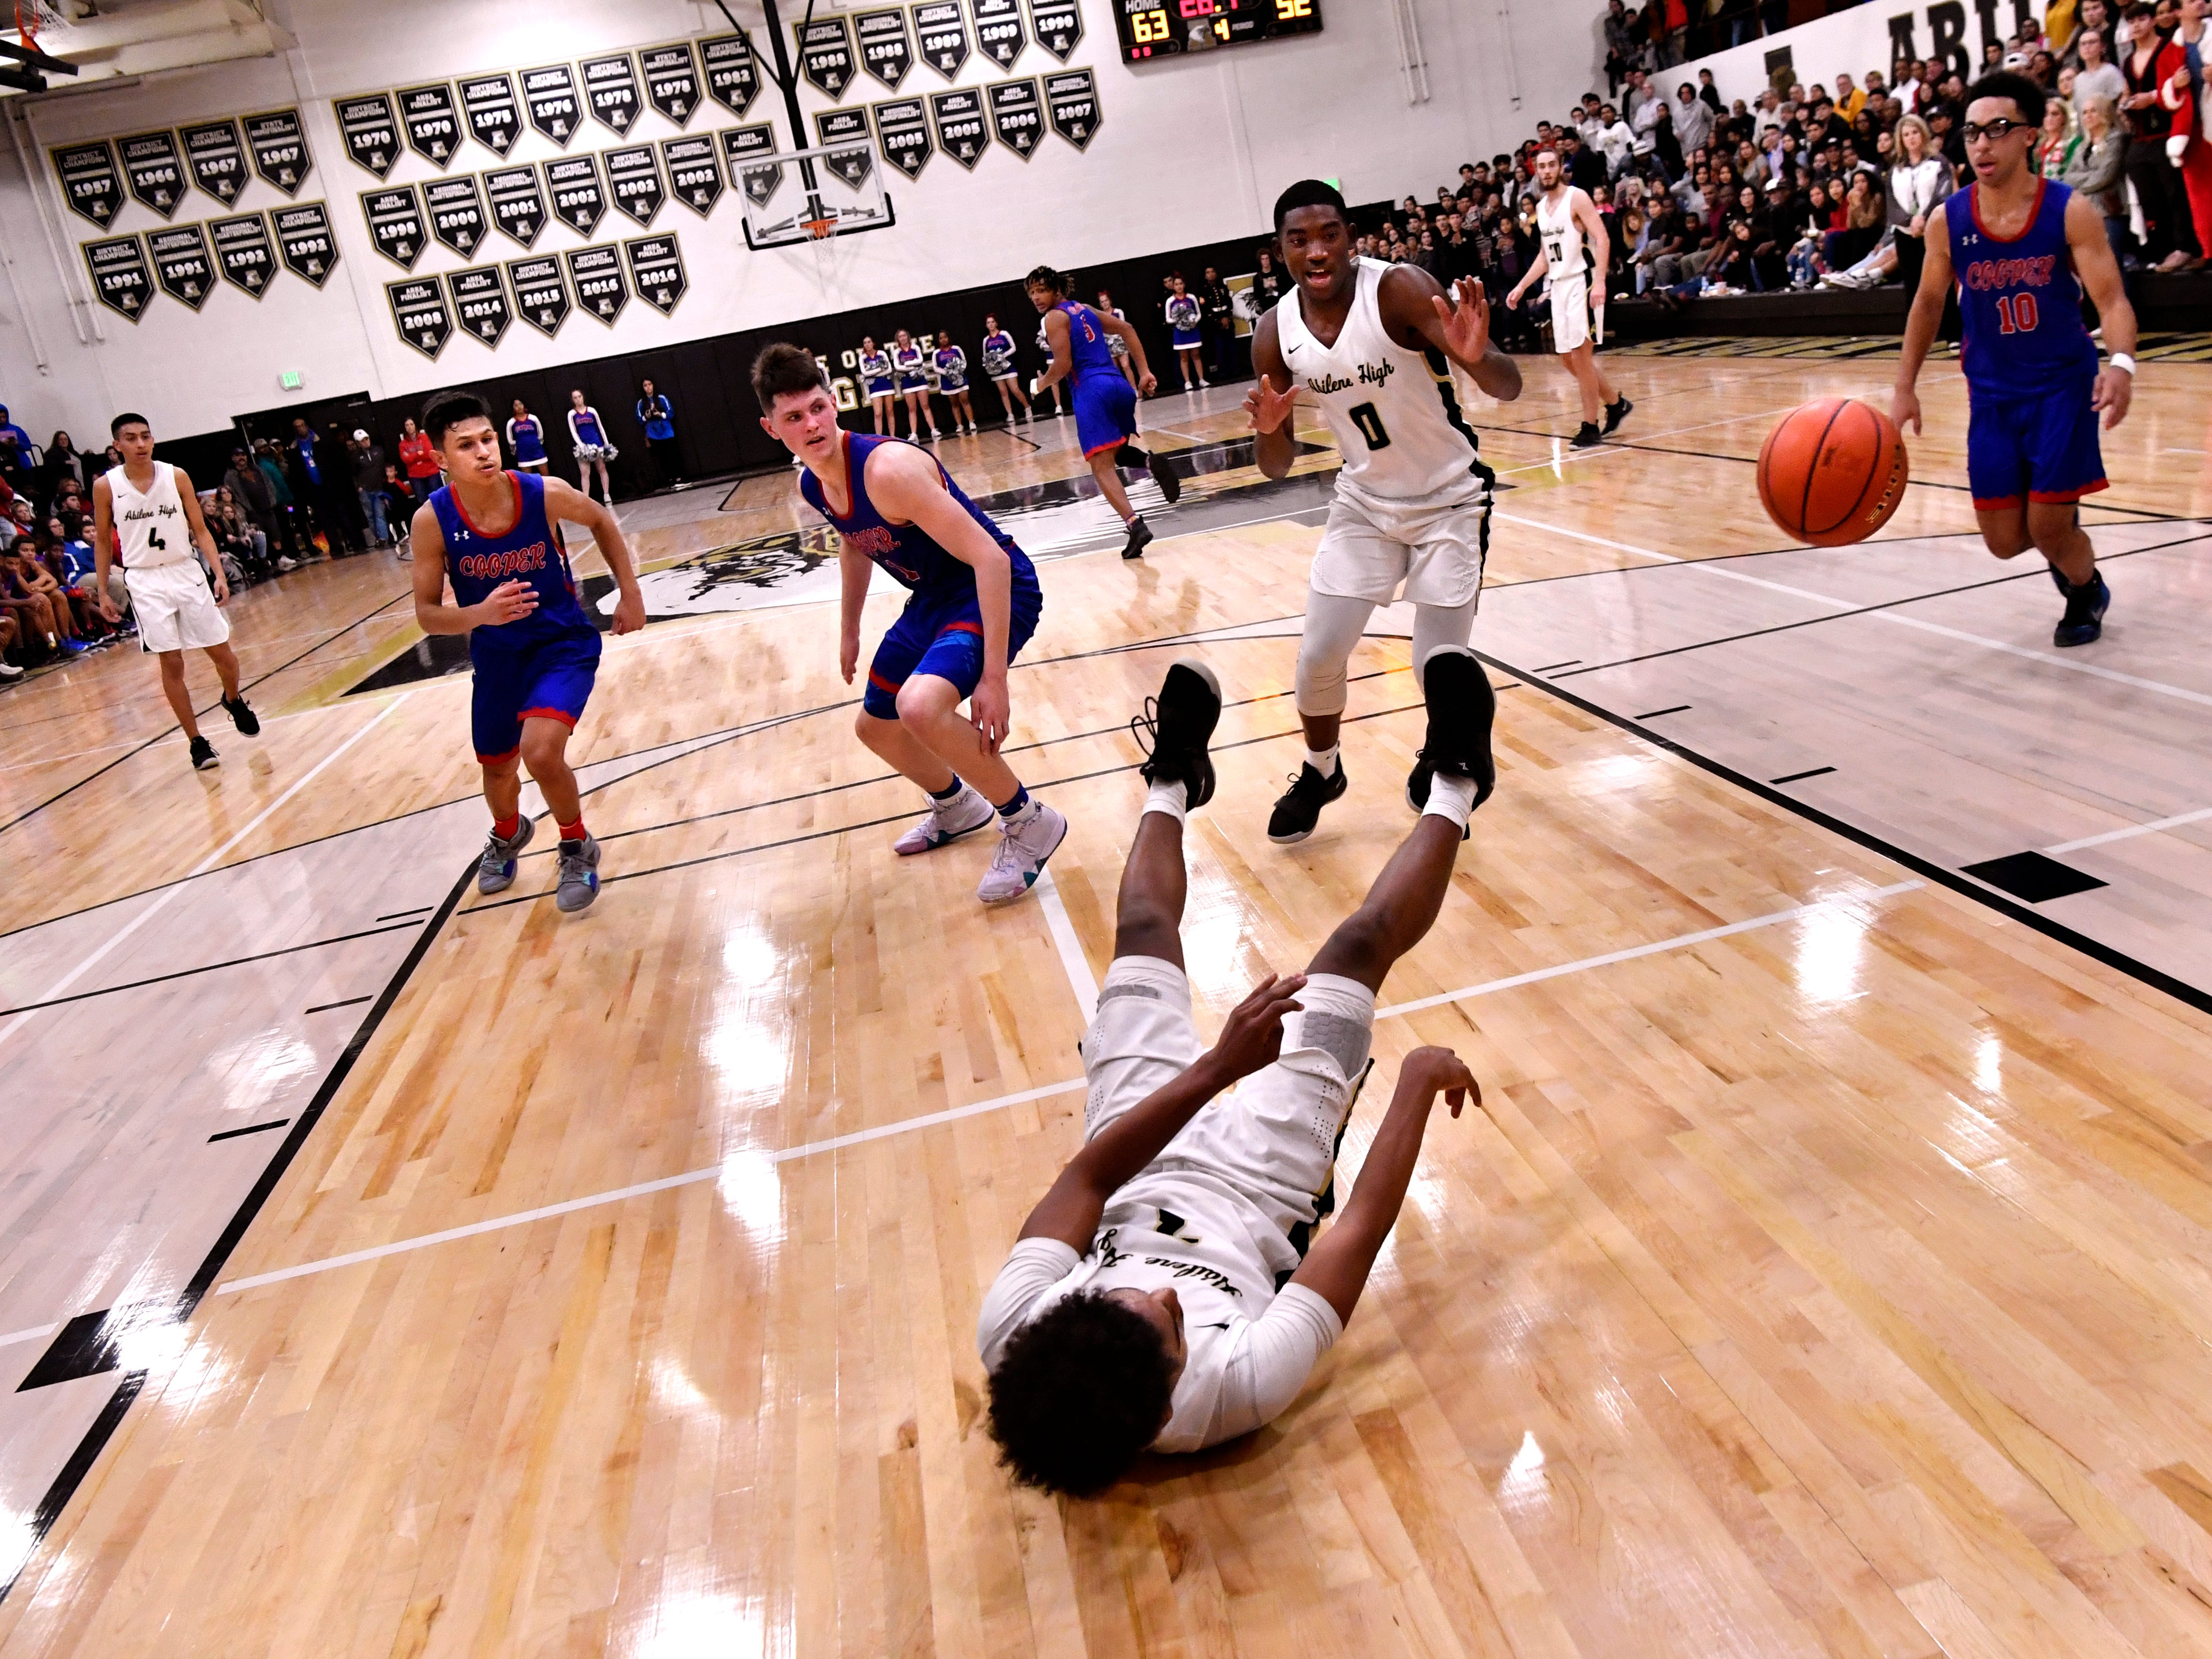 Eagle guard Jalen McGee passes the ball to the right off-camera as he falls to the court floor during Abilene High's crosstown basketball game against Cooper Friday Dec. 14, 2018. Final score was 63-52, Abilene High.